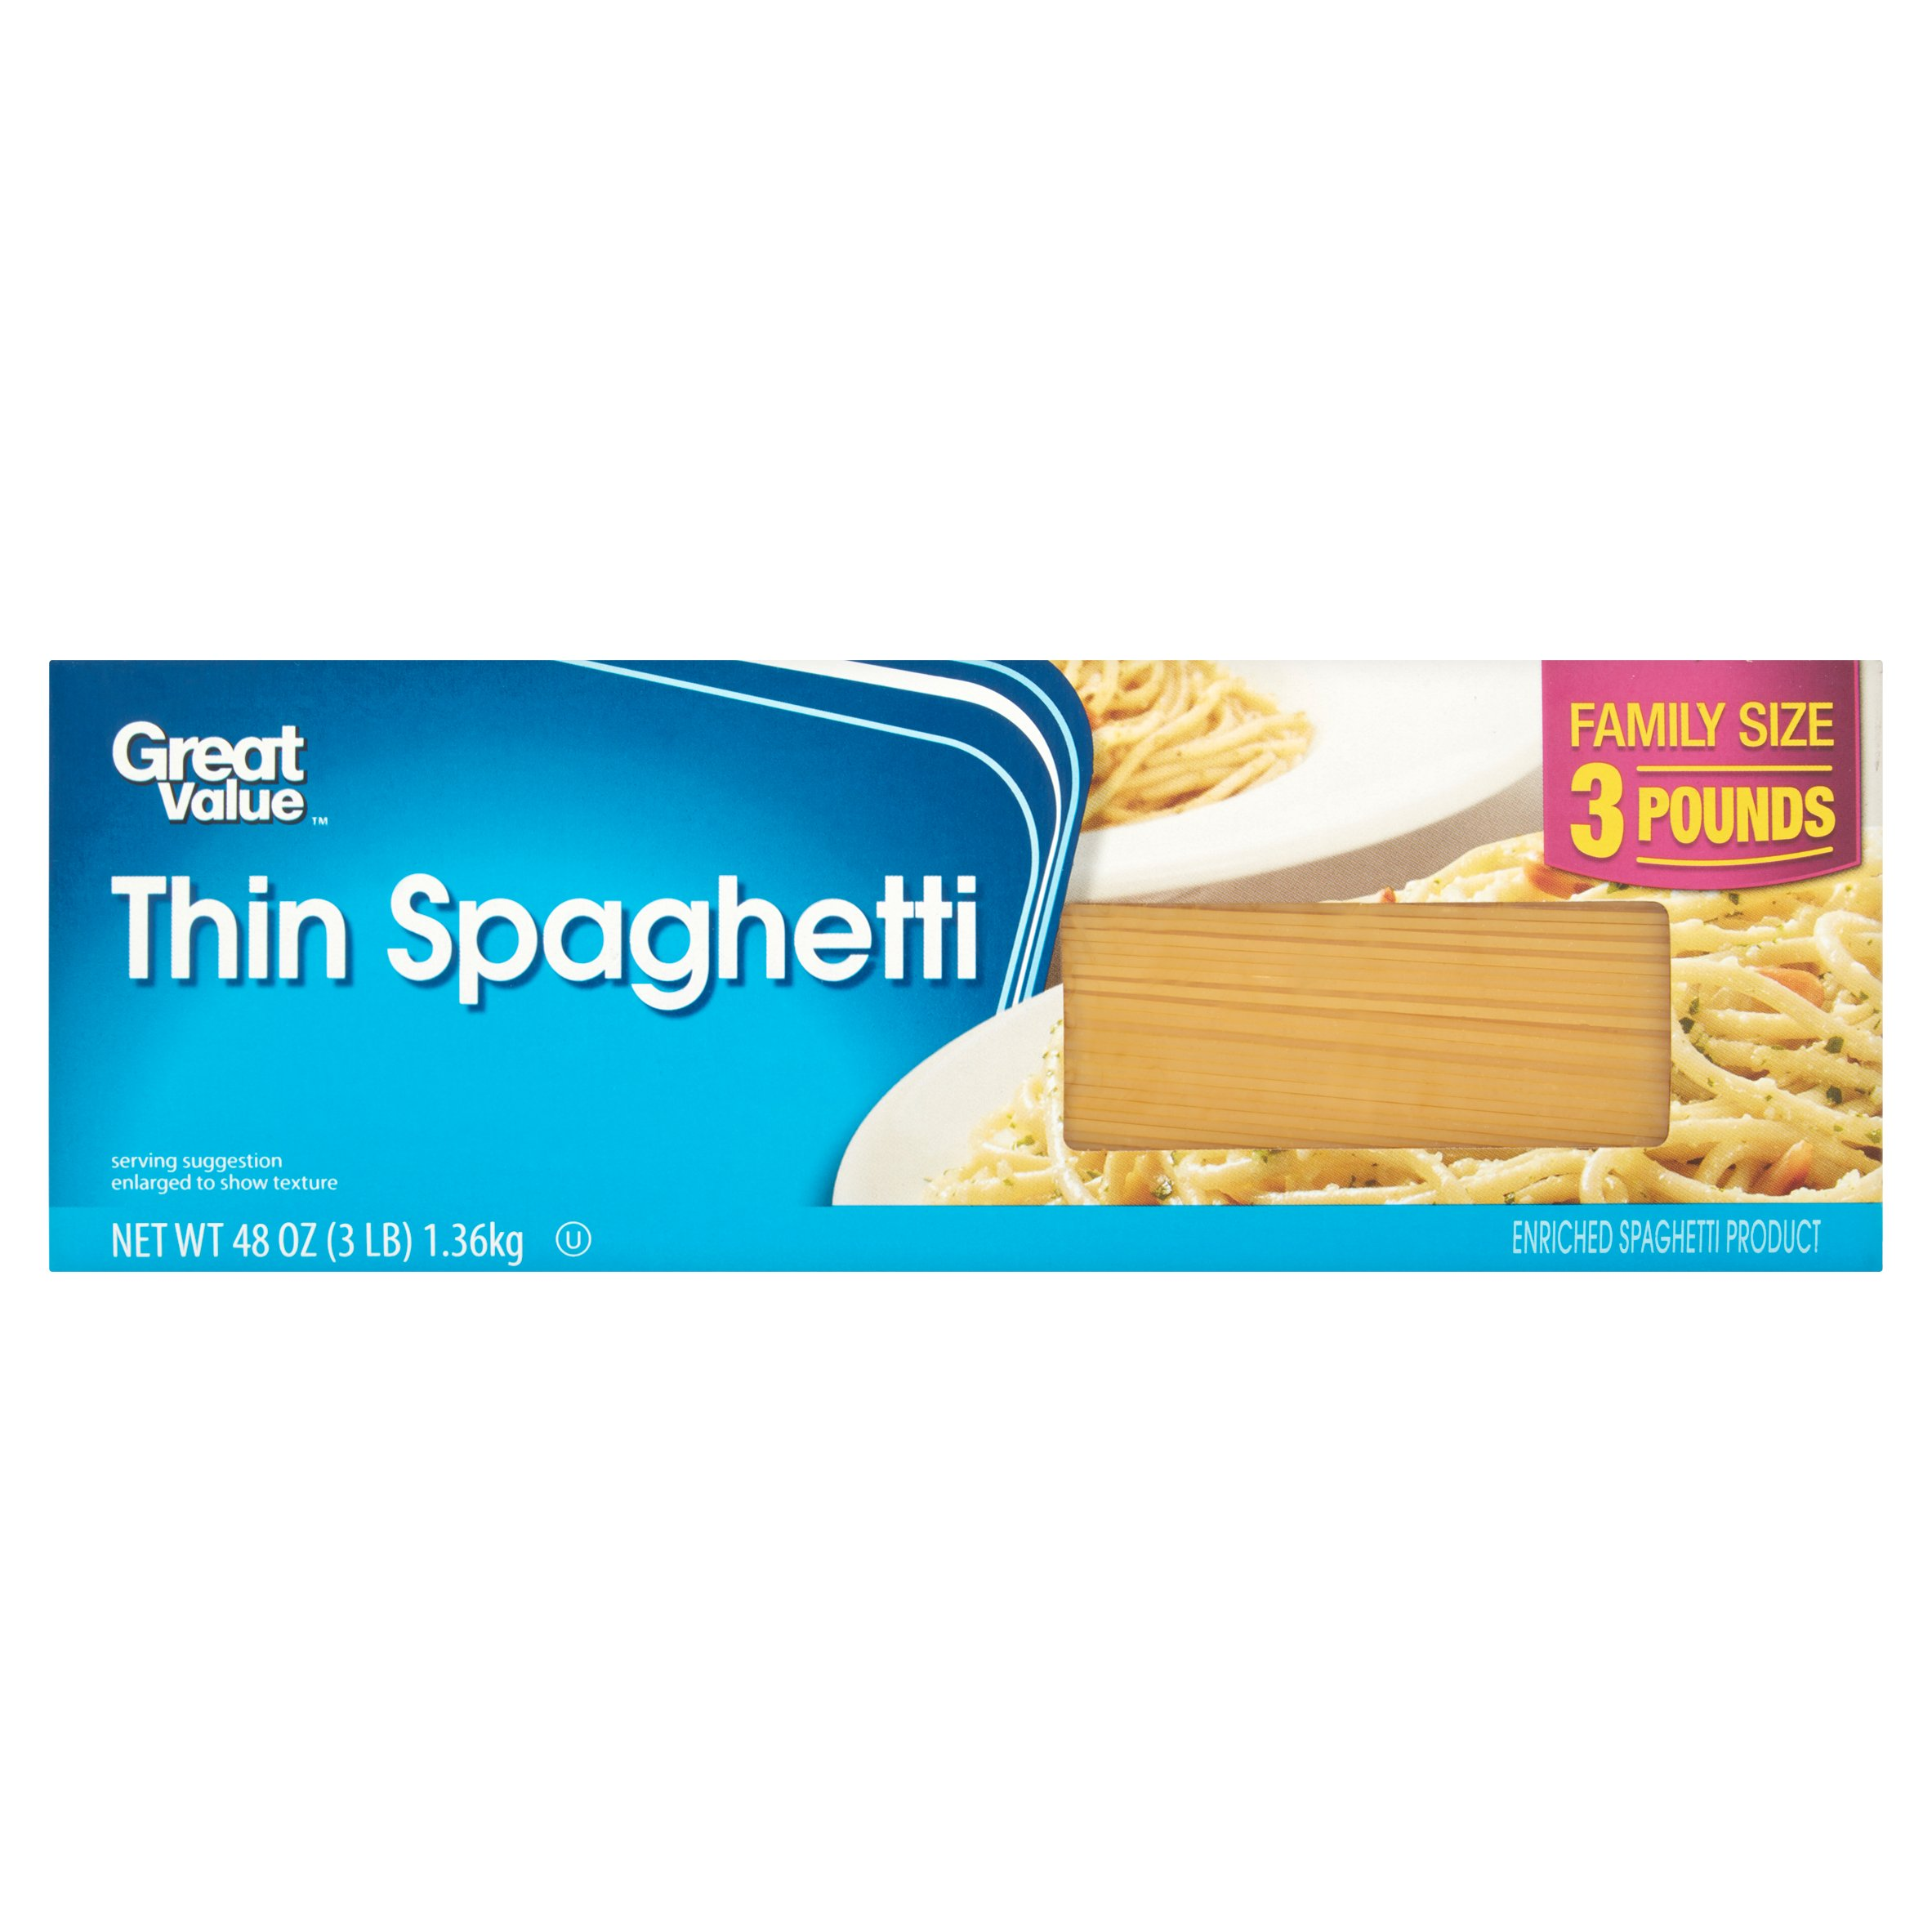 (6 Packs) Great Value Thin Spaghetti, 3 lb - $0.83/lb